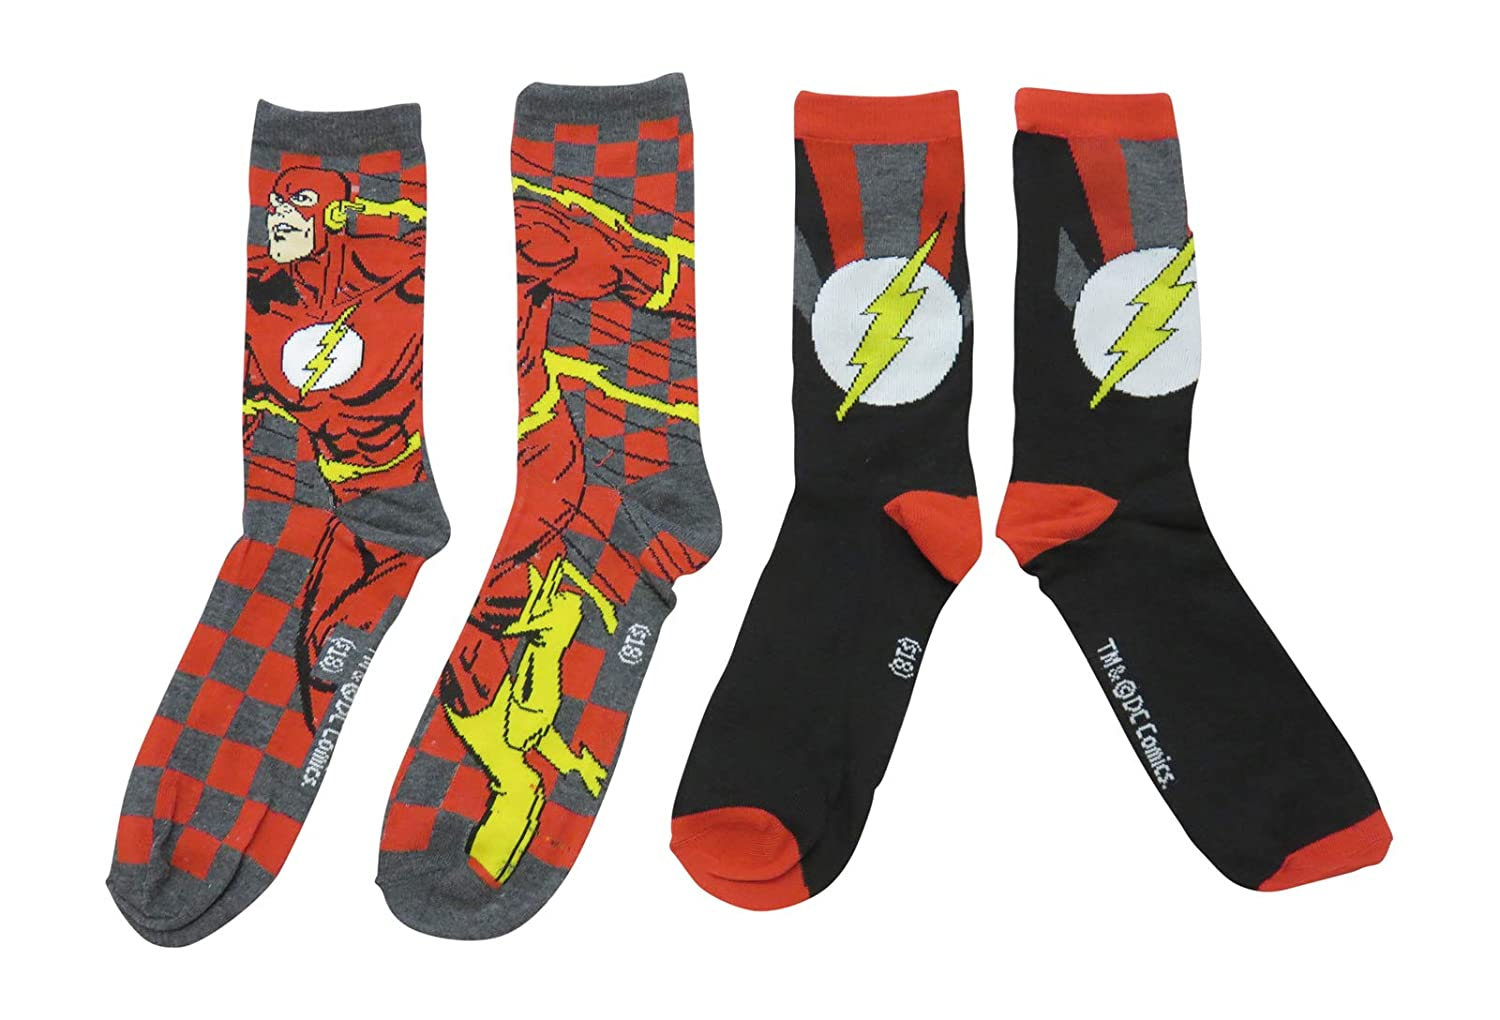 The Flash In Motion Crew Socks 2 Pair Pack New Licensed Superhero DC Comics